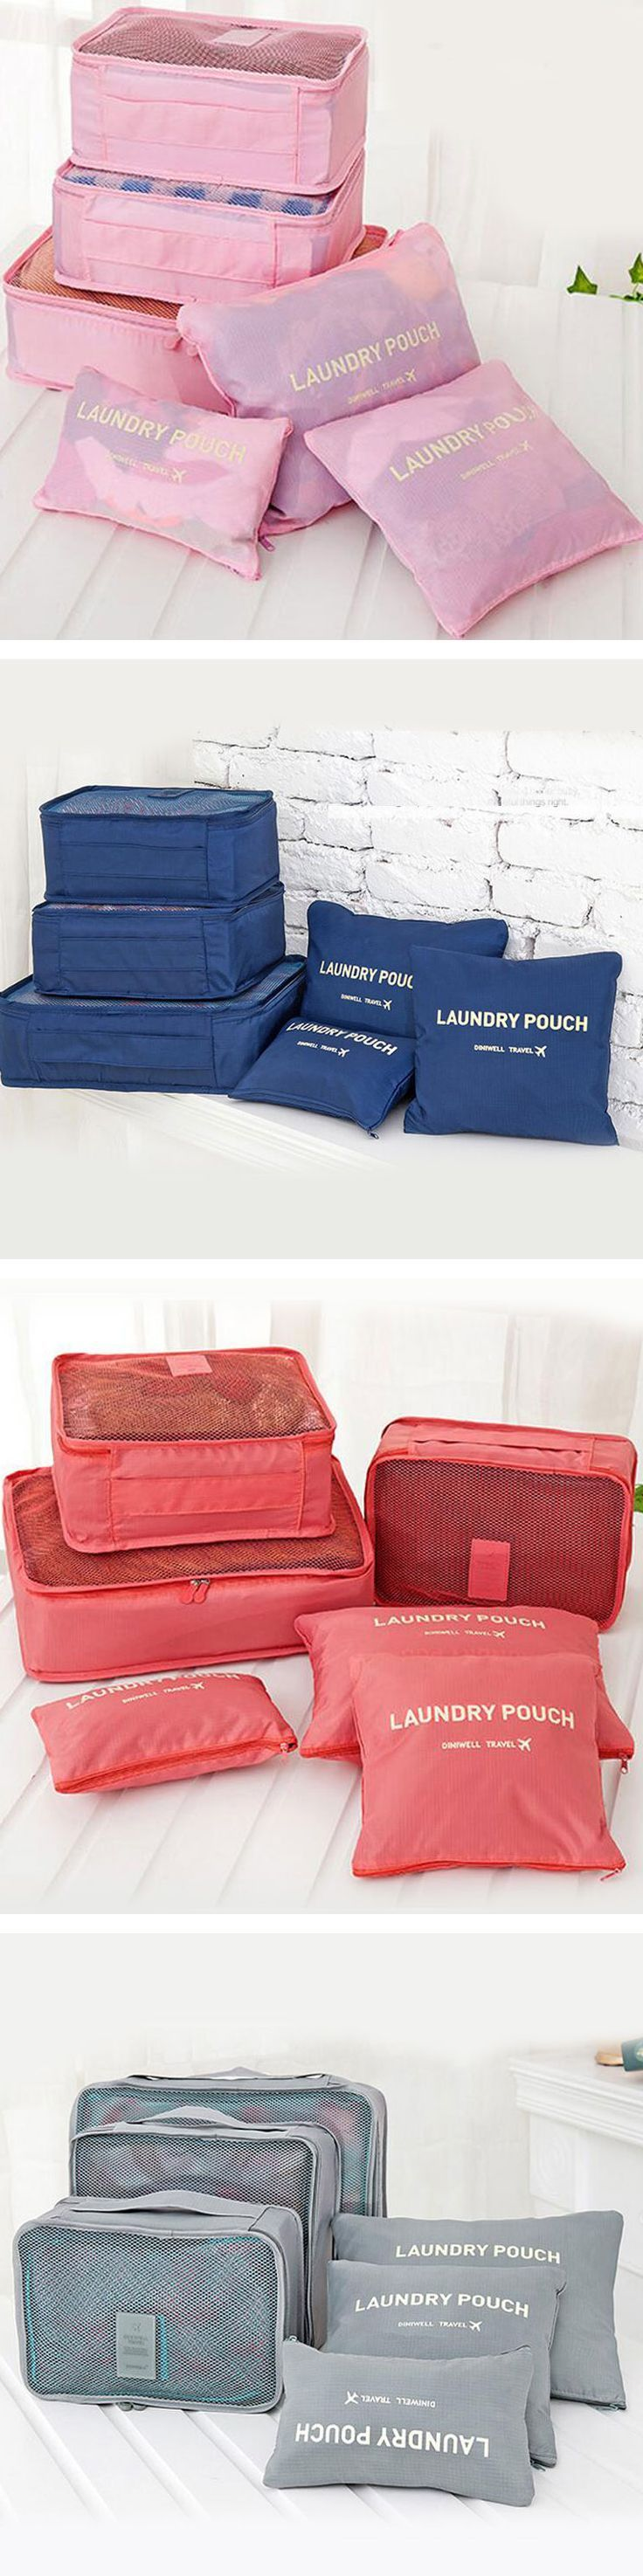 Travel Pouch 6 Piece Bag Set!